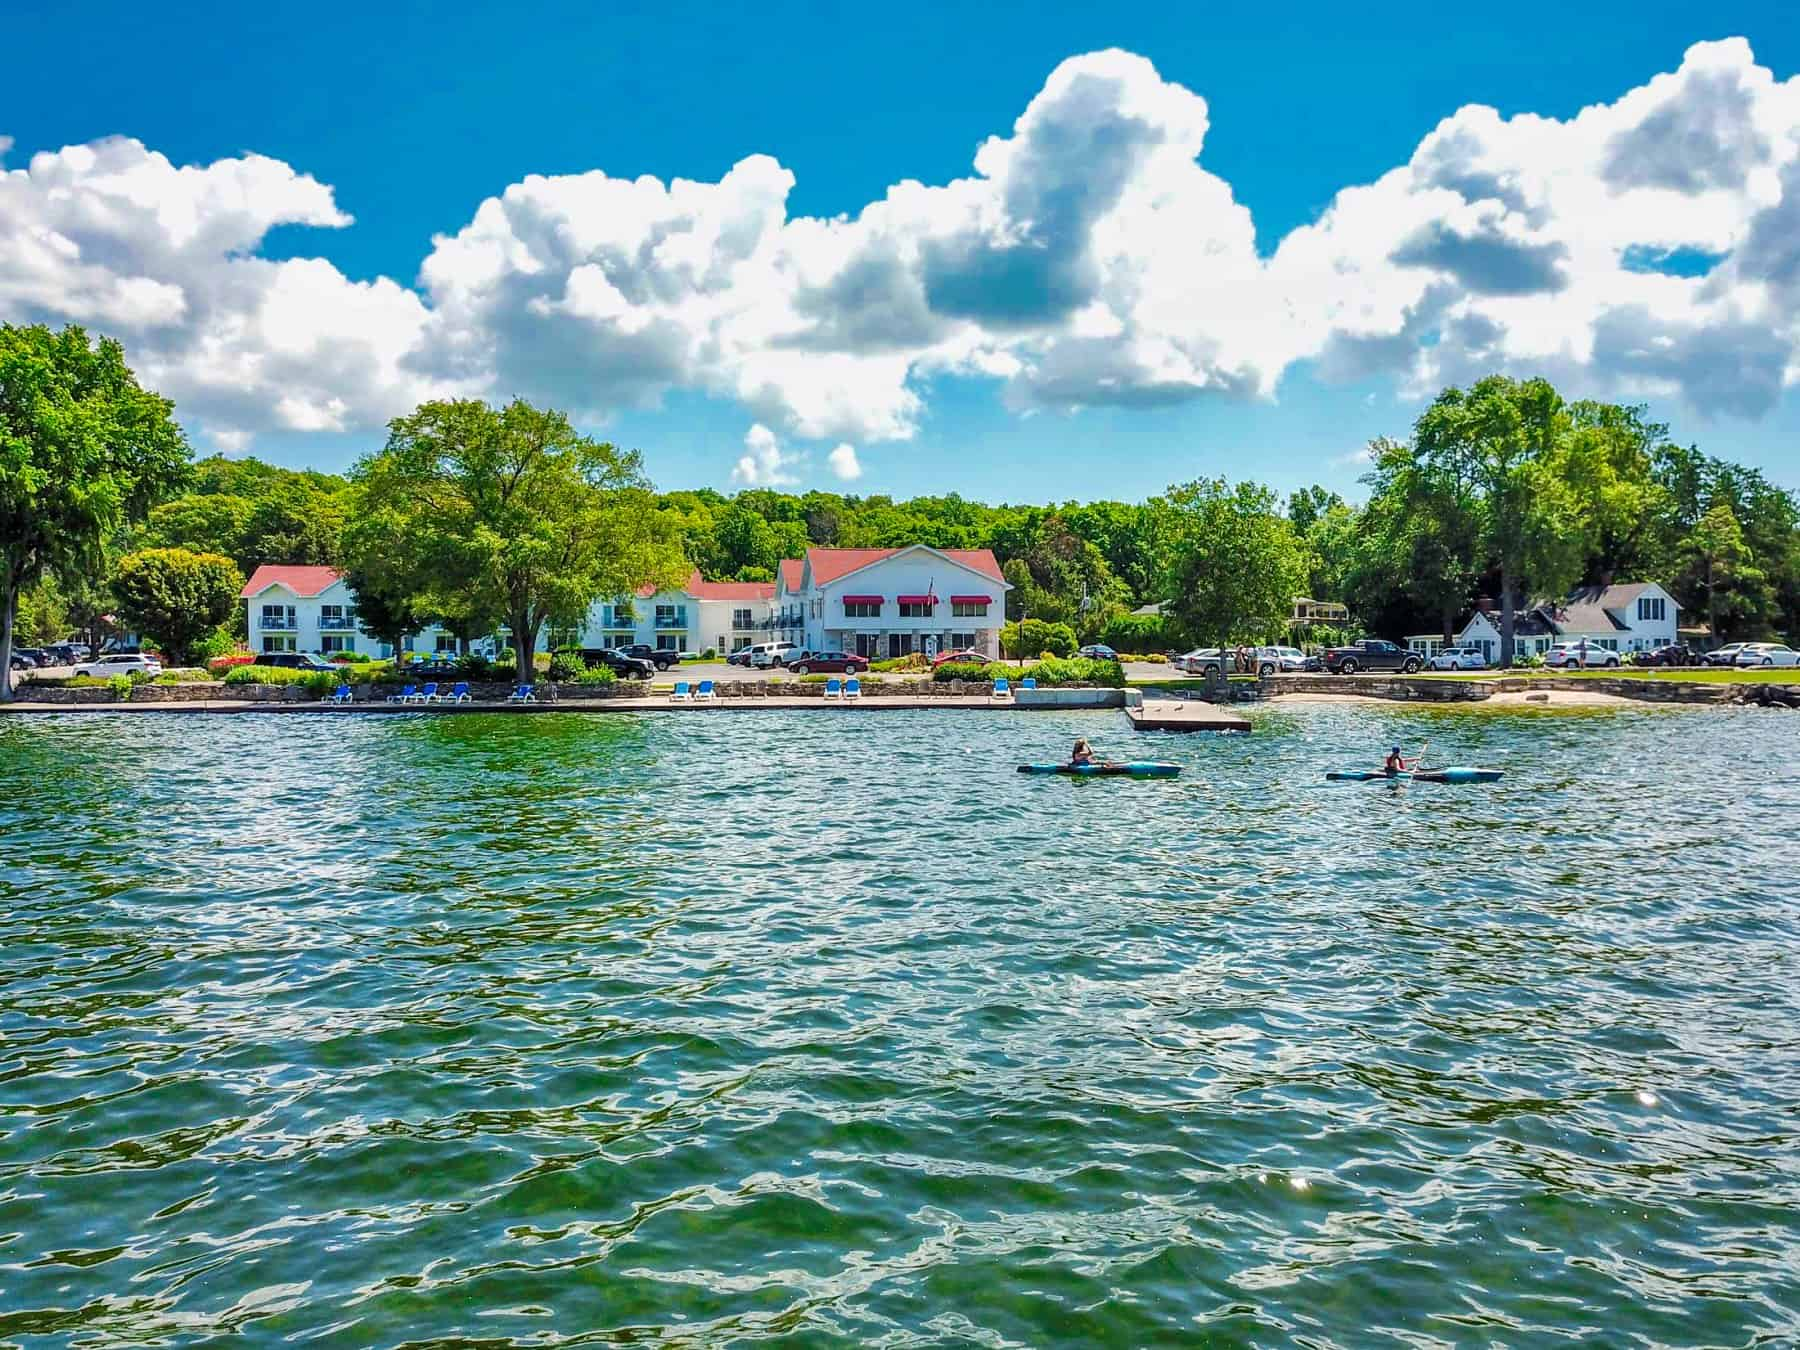 The Ephraim resort with the best waterfront view